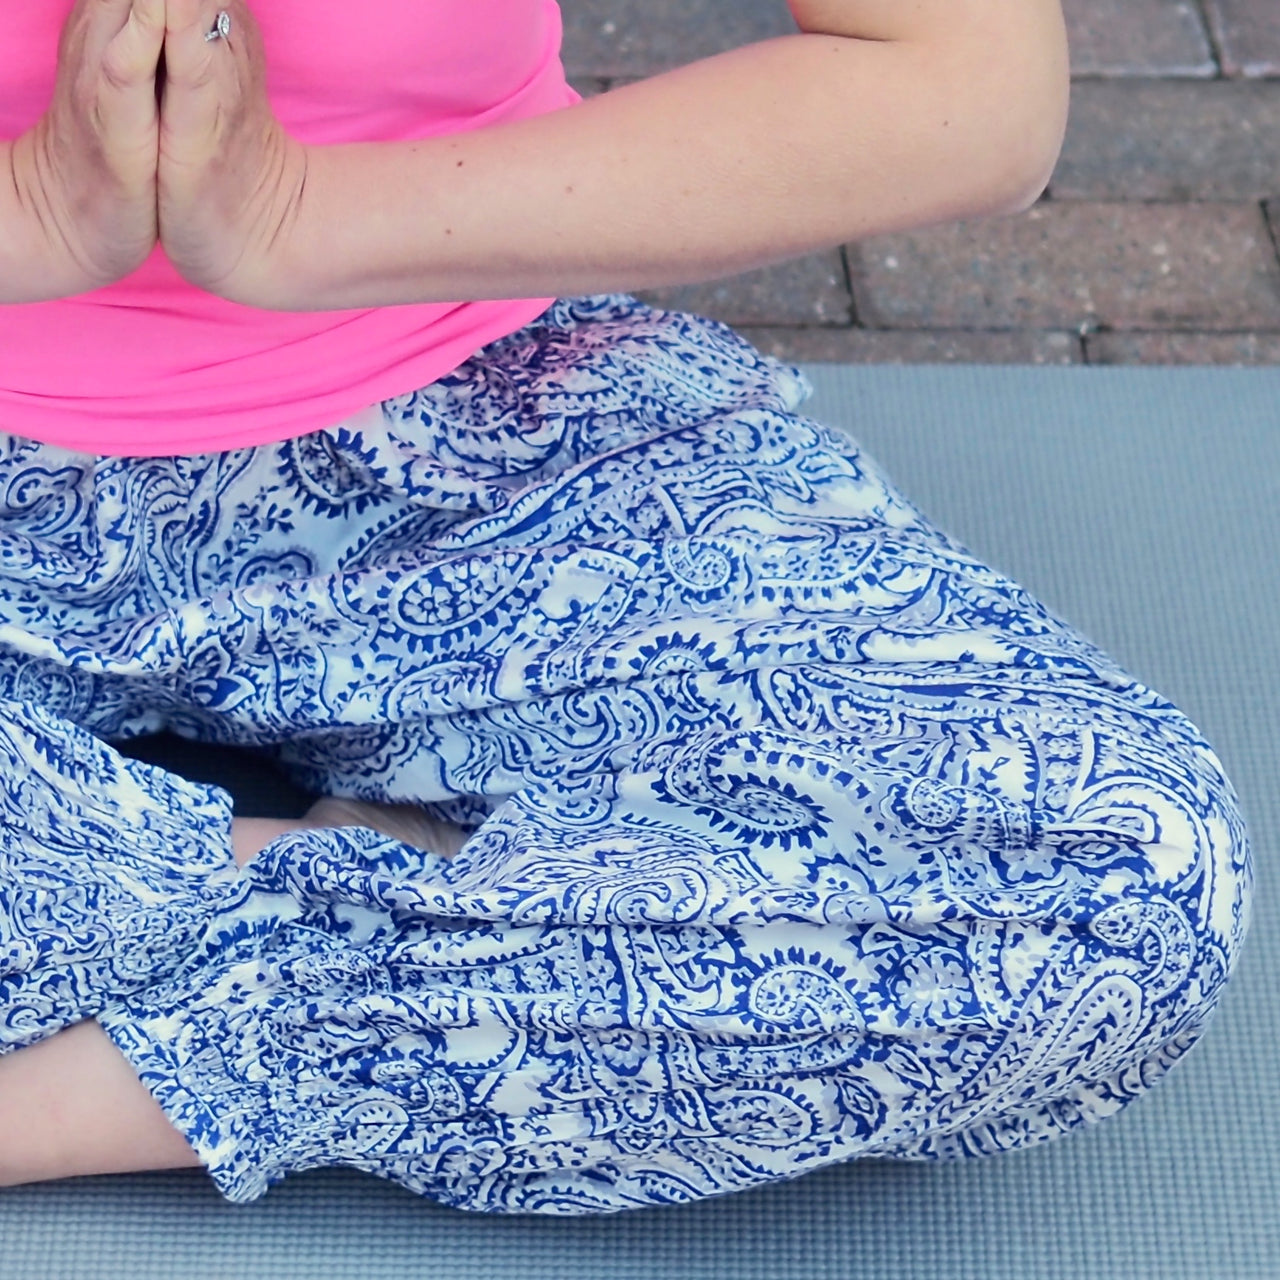 Blue Paisley Yoga Pants - Xtra Long